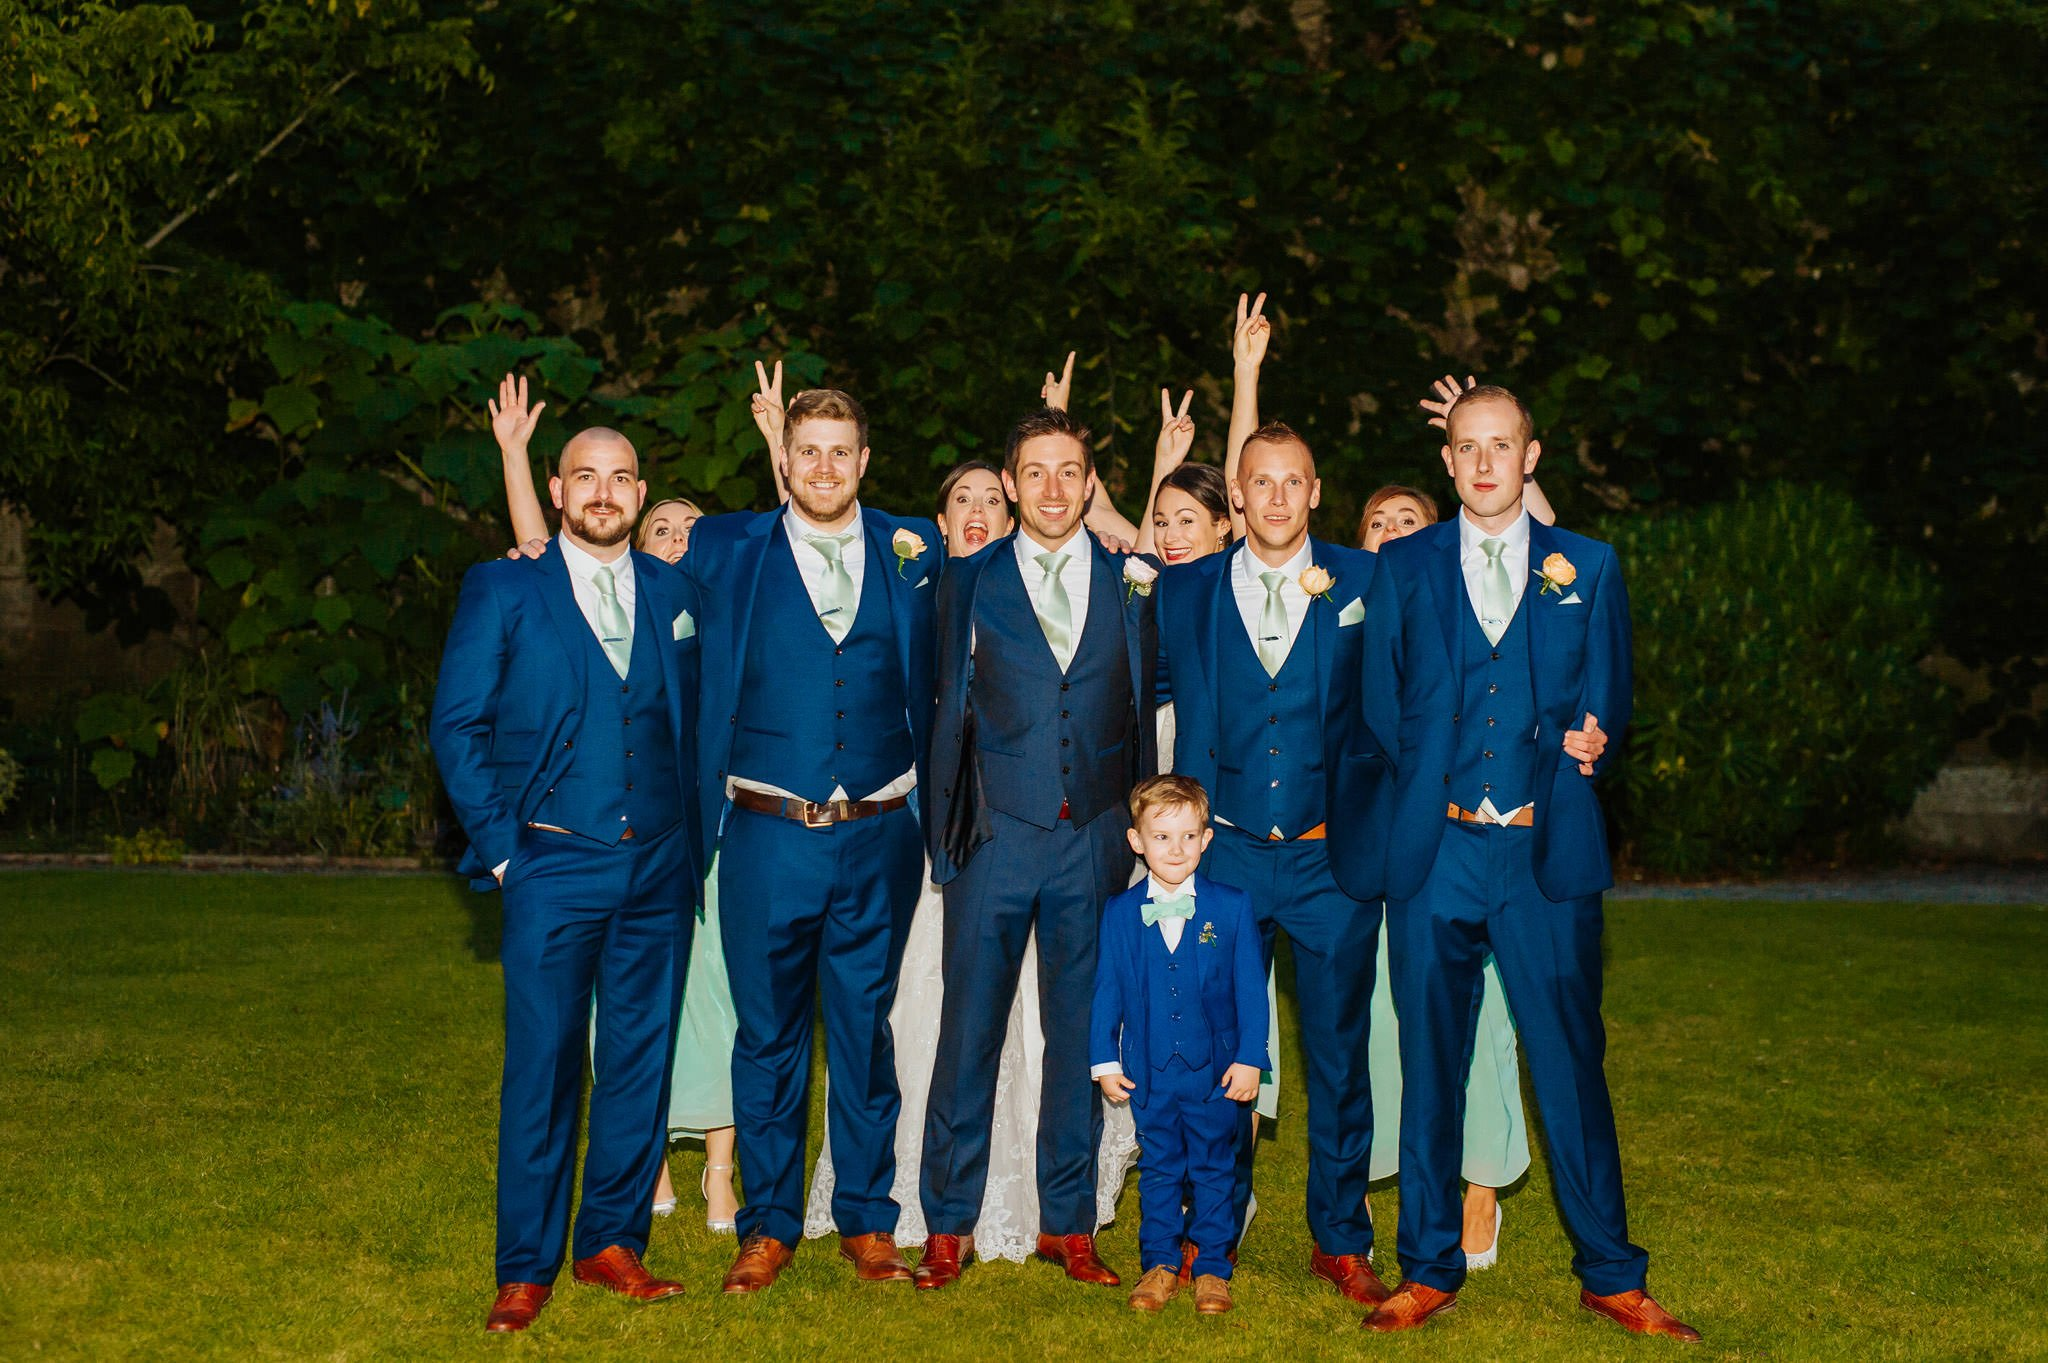 eastnor castle wedding pictures 75 - Eastnor Castle wedding photographer Herefordshire, West Midlands - Sarah + Dean